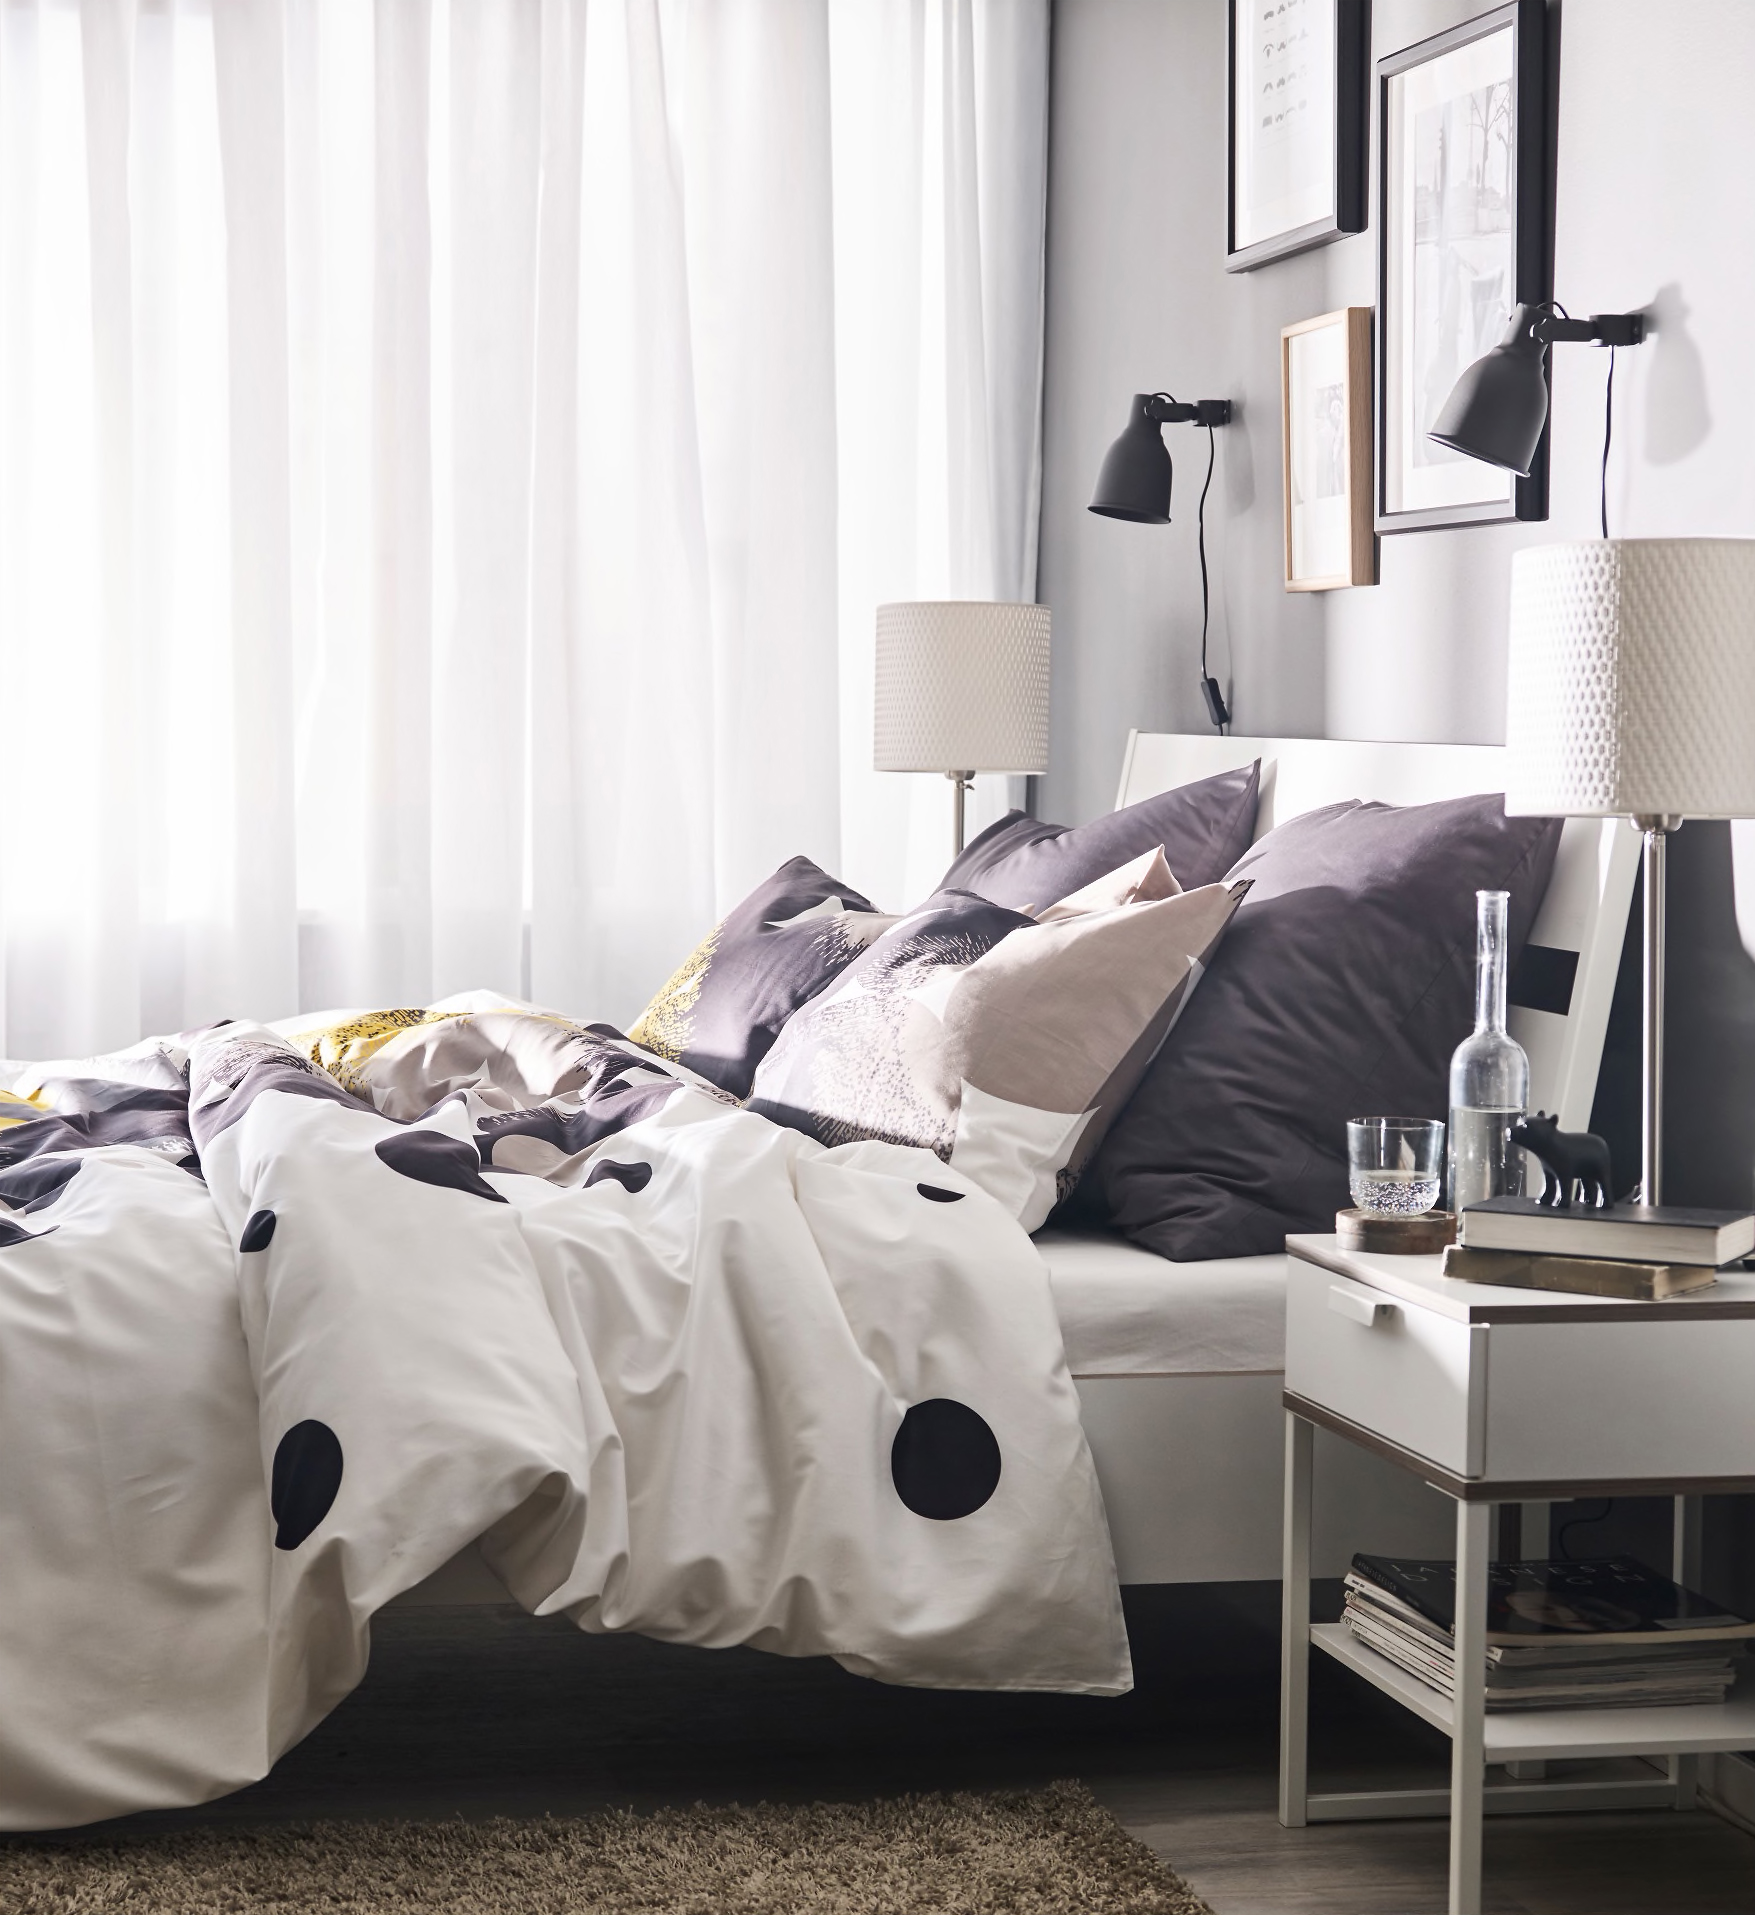 The 10 Best IKEA Bed Hacks Of All Time